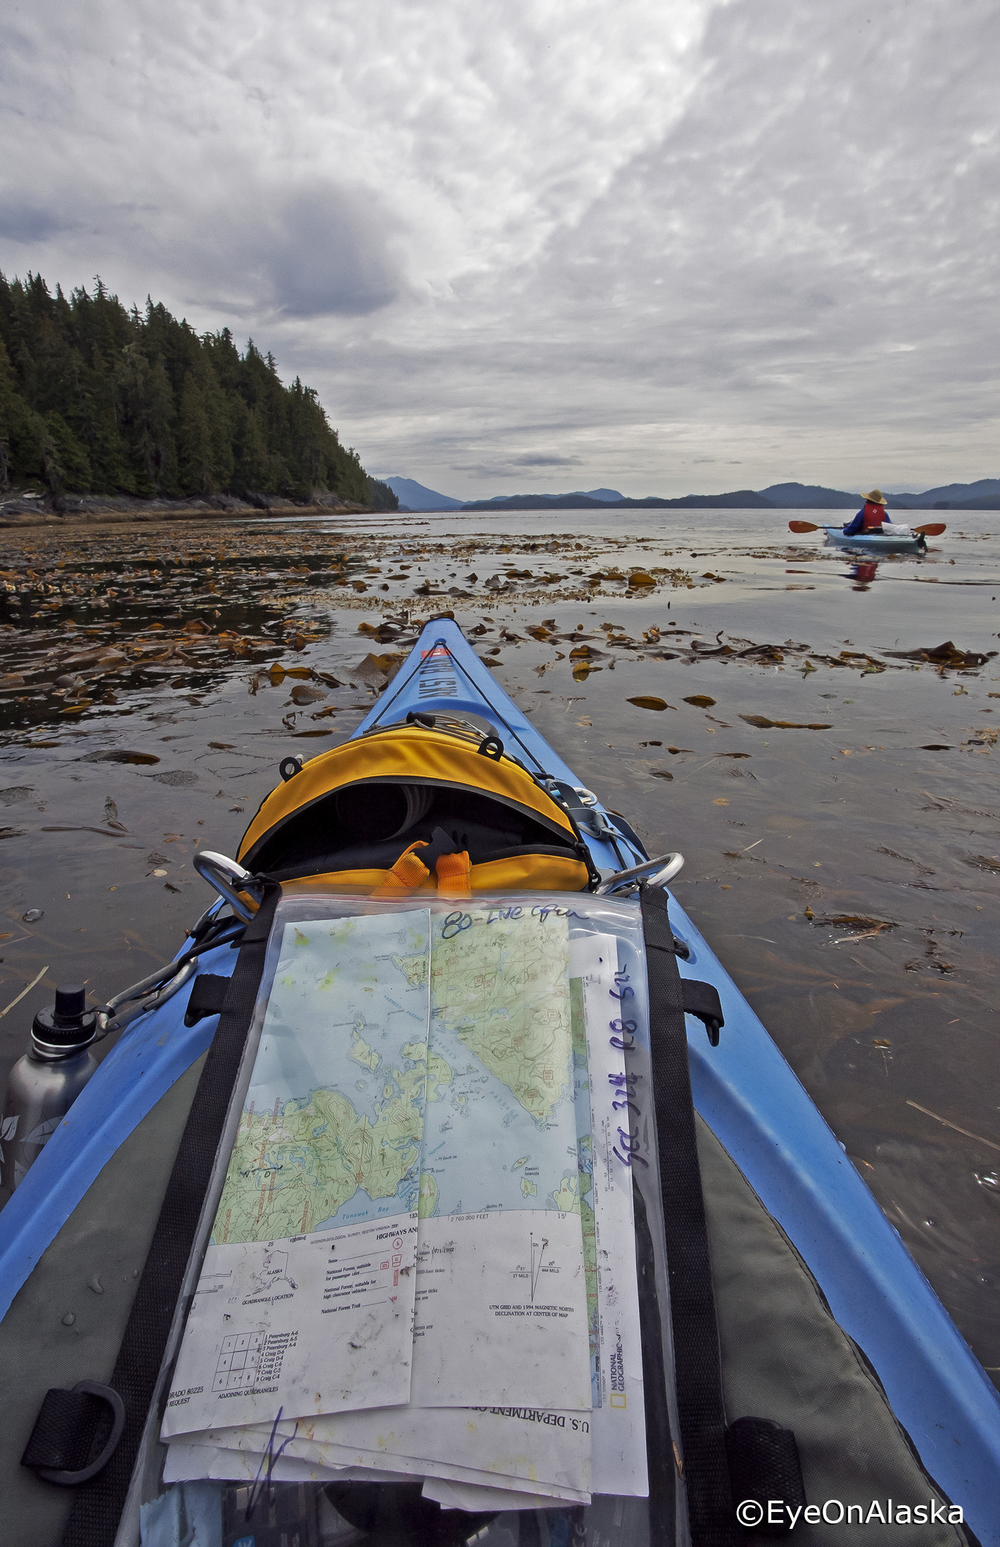 Kep Beds, Tuxekan Island, Sea Otter Sound.